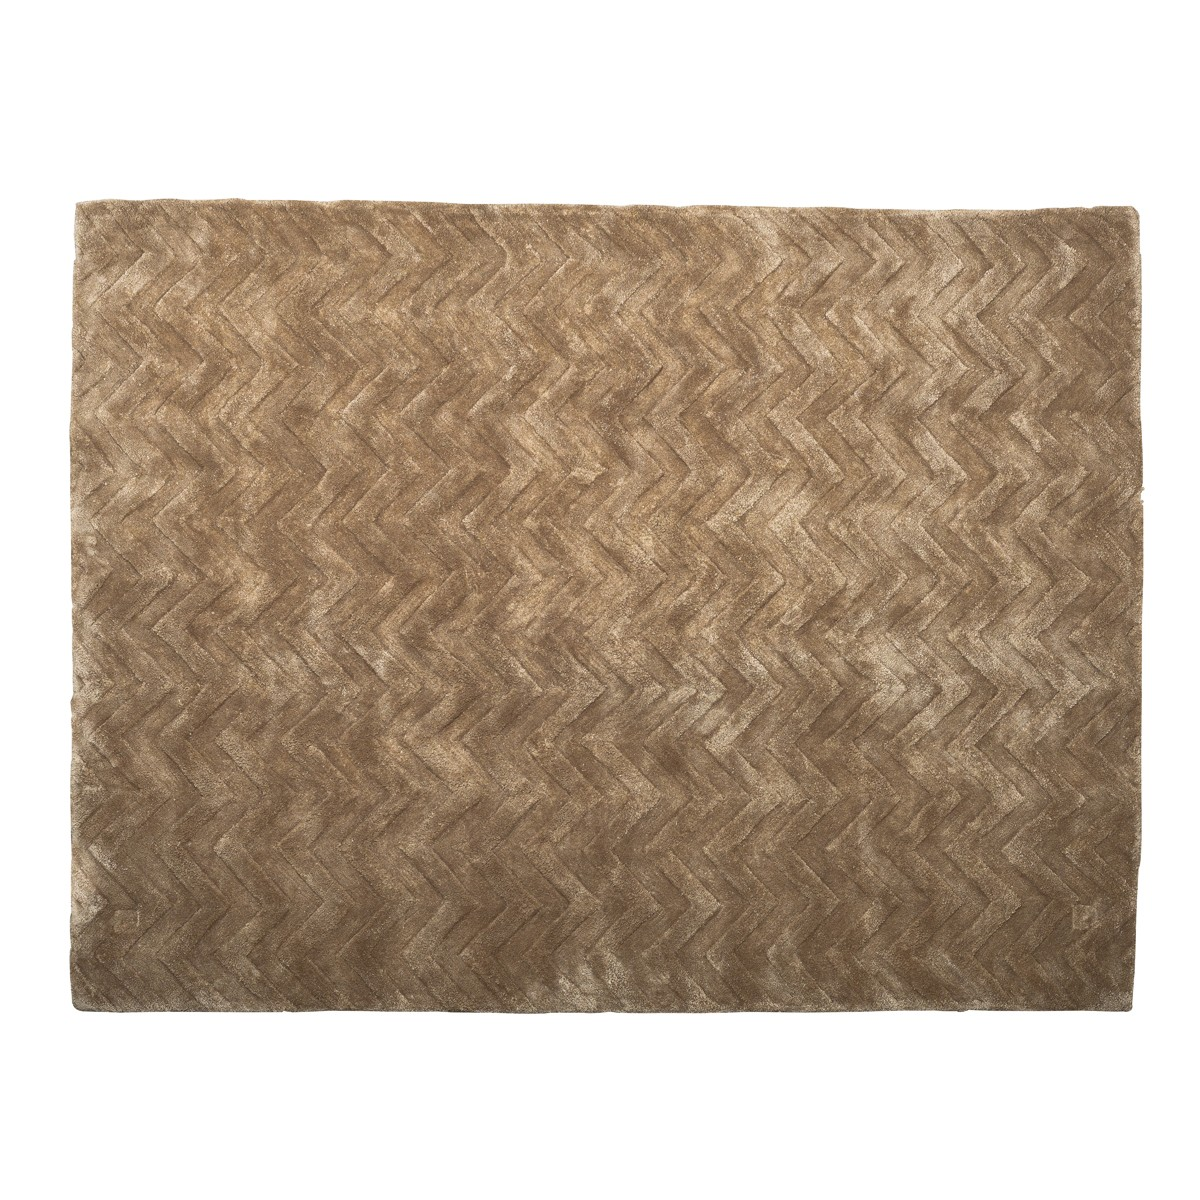 Cocoa -  Chevron Rug in Taupe